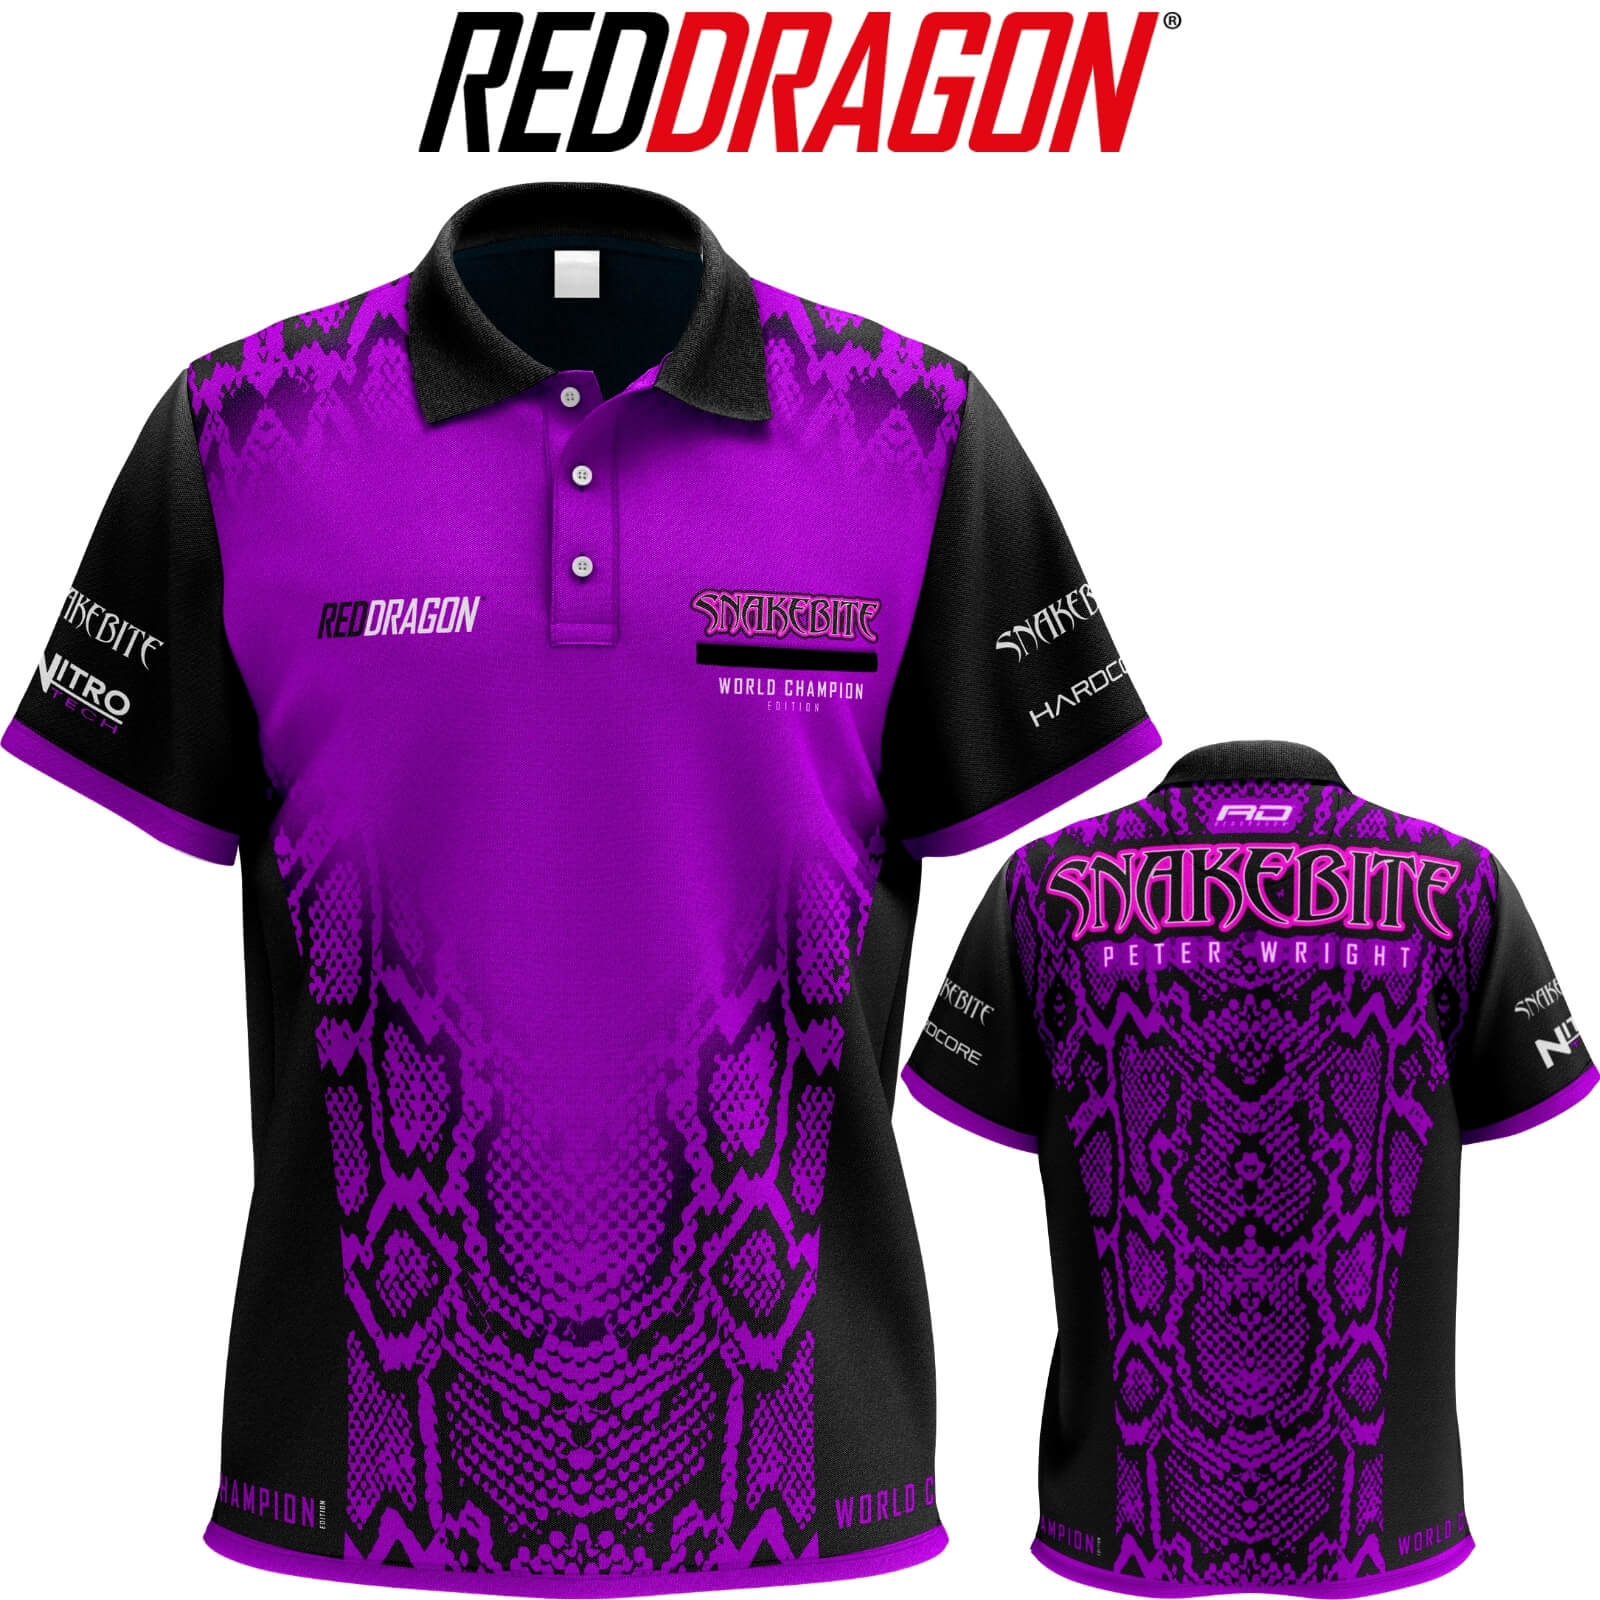 Dart Shirts - Red Dragon - Snakebite World Champion Edition Tour Dart Shirt - S to 3XL